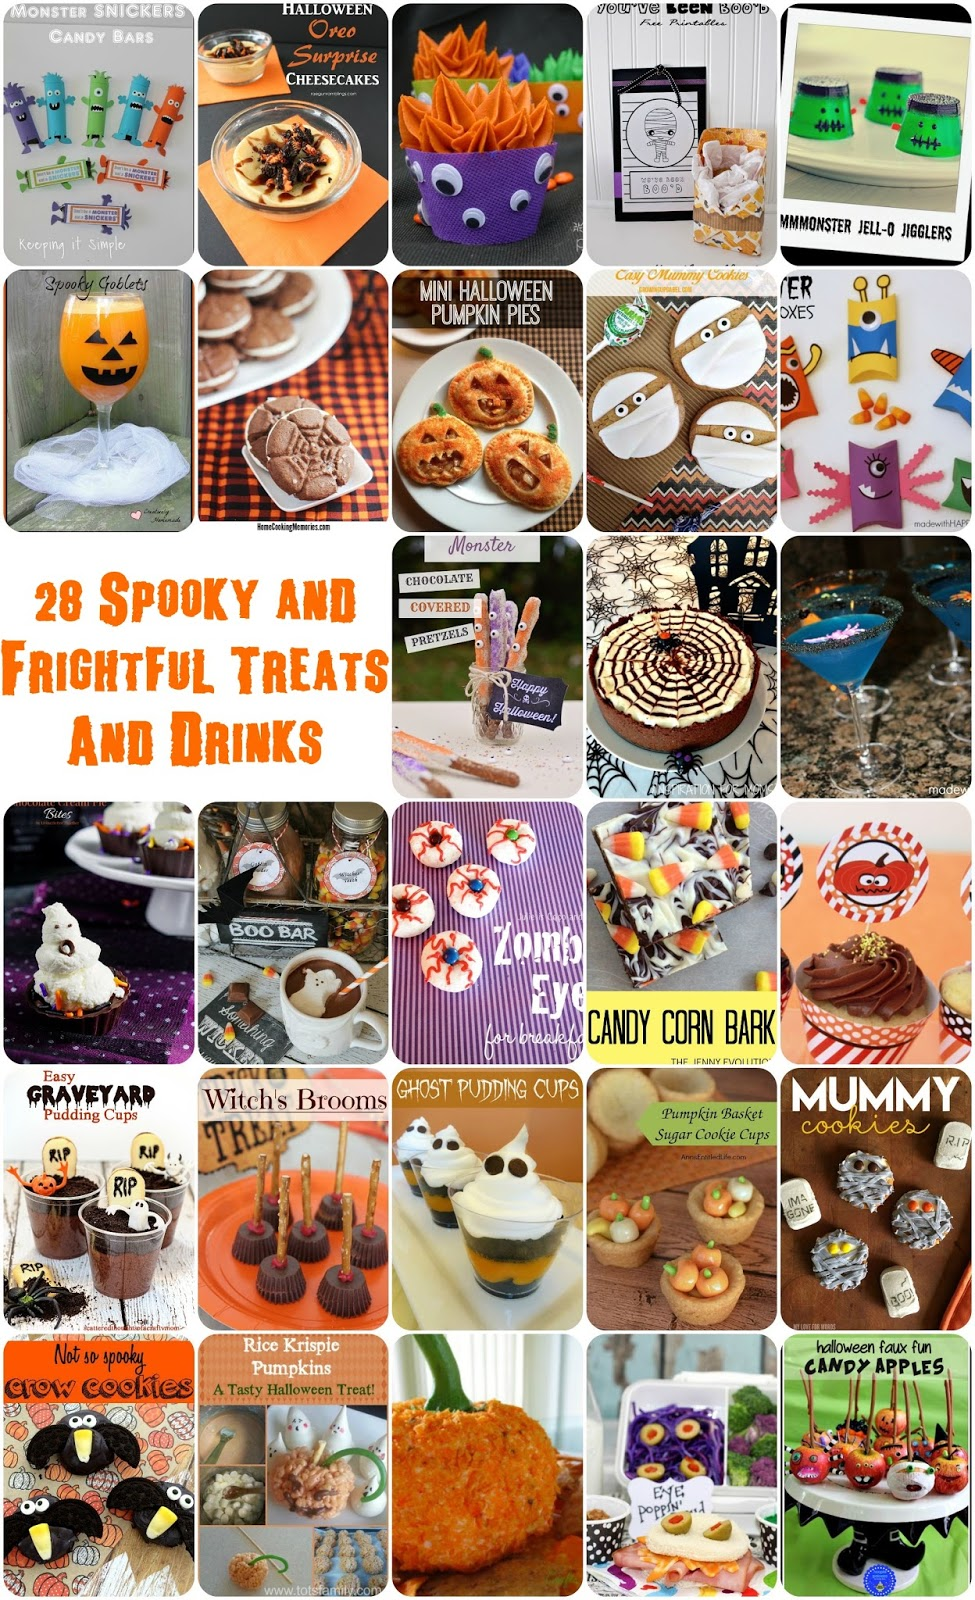 28 Spooky and Frightful Halloween Treats and Drinks